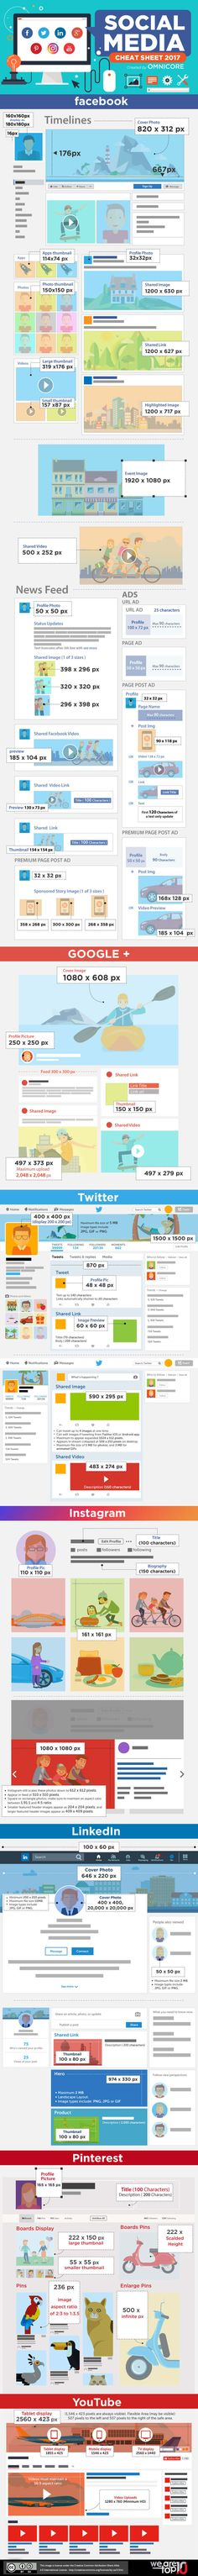 Great Social Media Infographic (cheat sheet 2017) on Image Sizes. Check https://www.toolshero.com/infographics/social-media-image-sizes-cheat-sheet-2017/